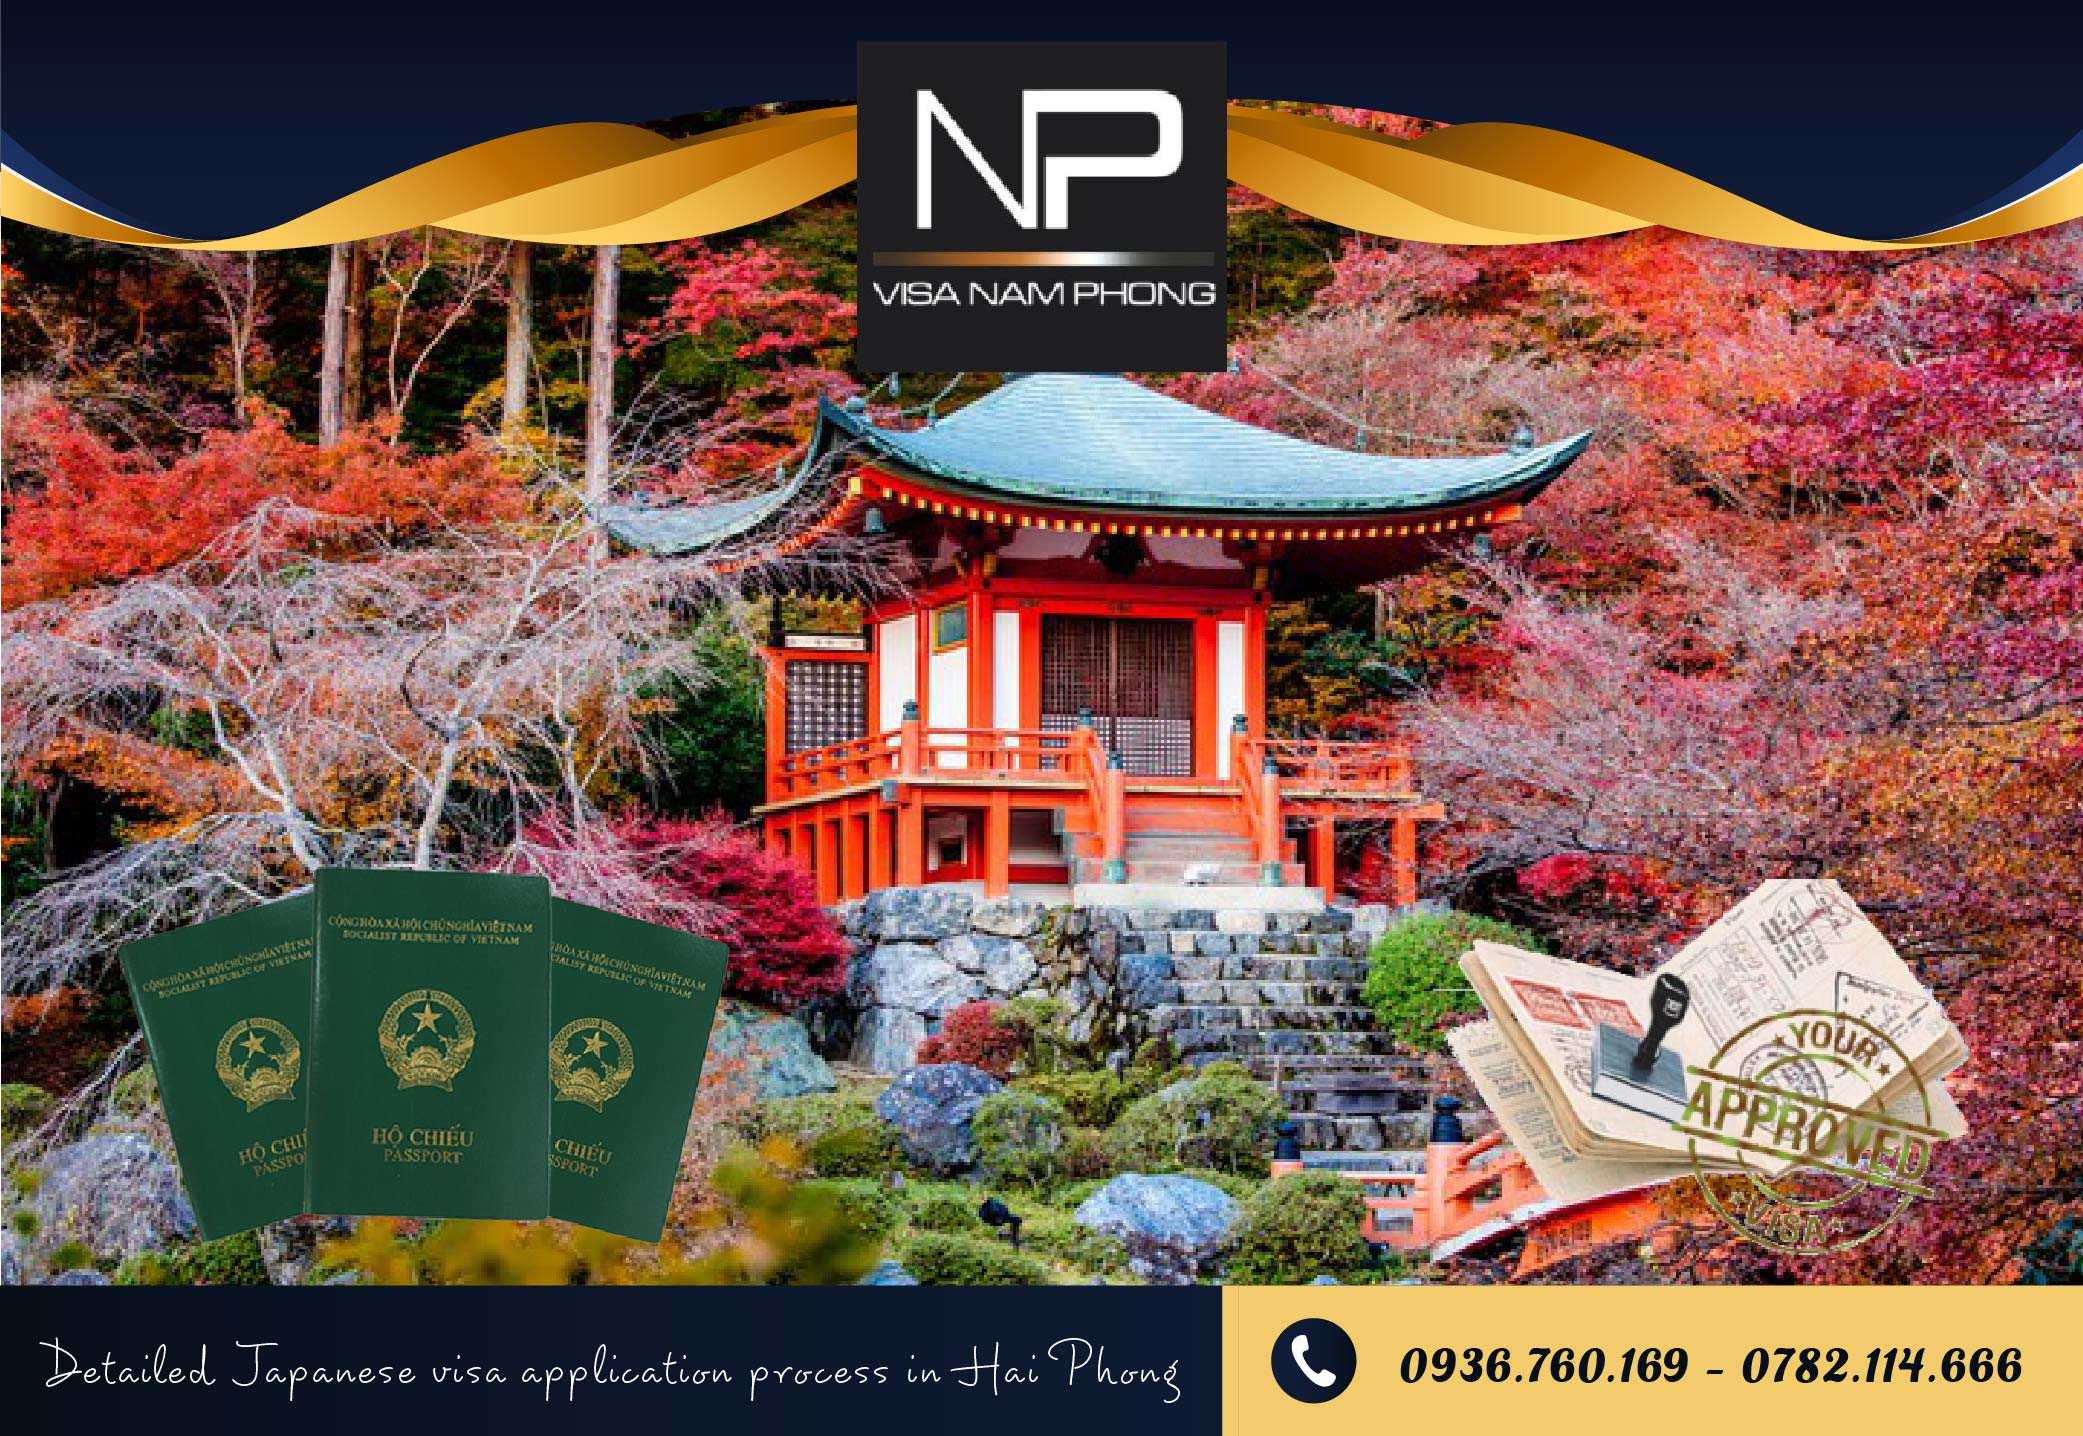 Detailed Japanese visa application process in Hai Phong